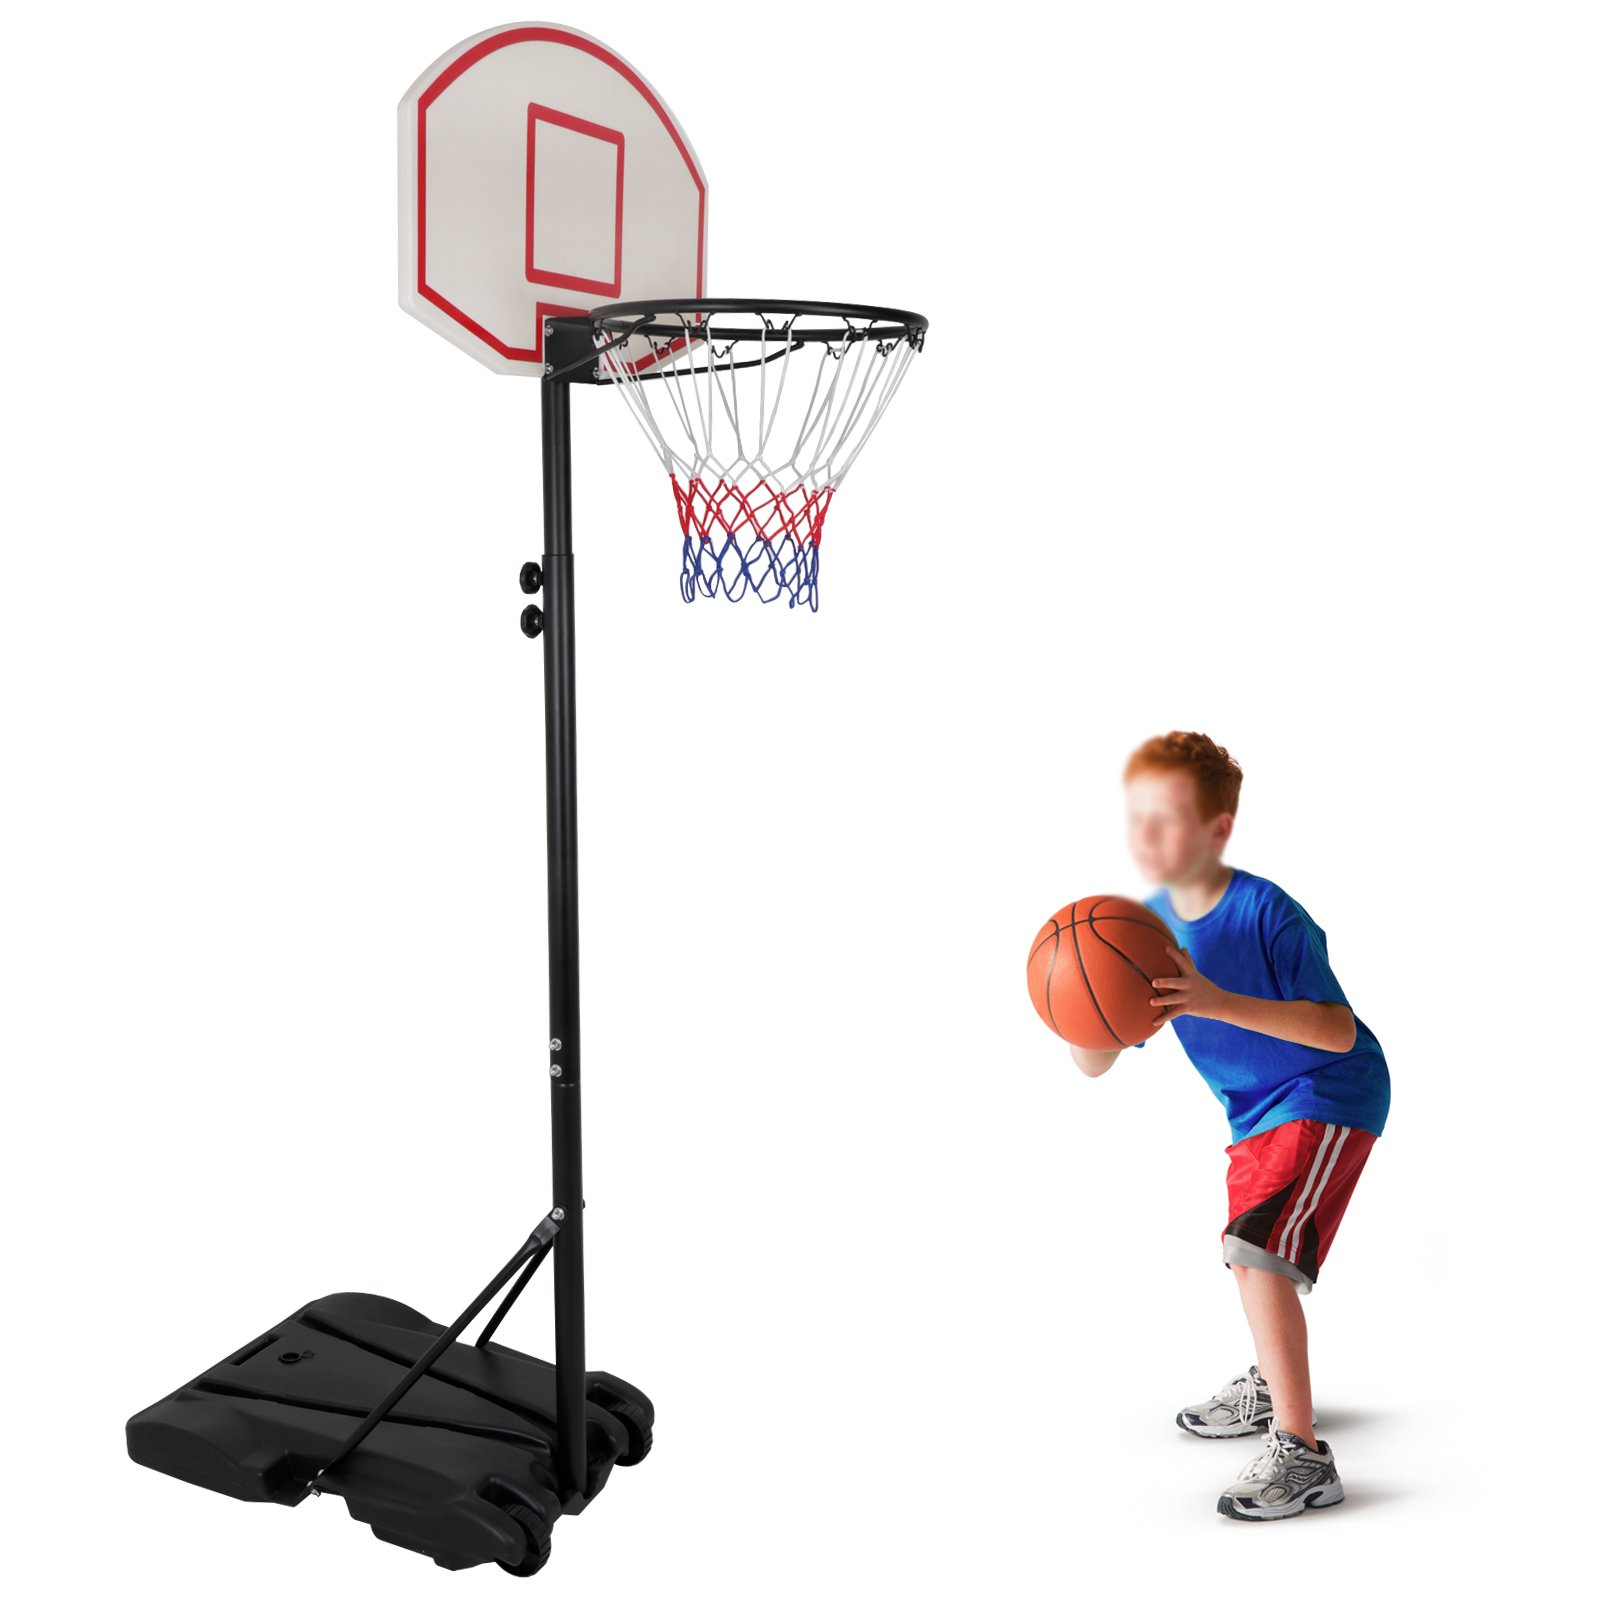 HomGarden Mini Portable Basketball Hoop Stand for Kids Juniors 8 ft Adjustable Height Backboard Starter Basketball System w/Wheels Indoor Outdoor by HomGarden